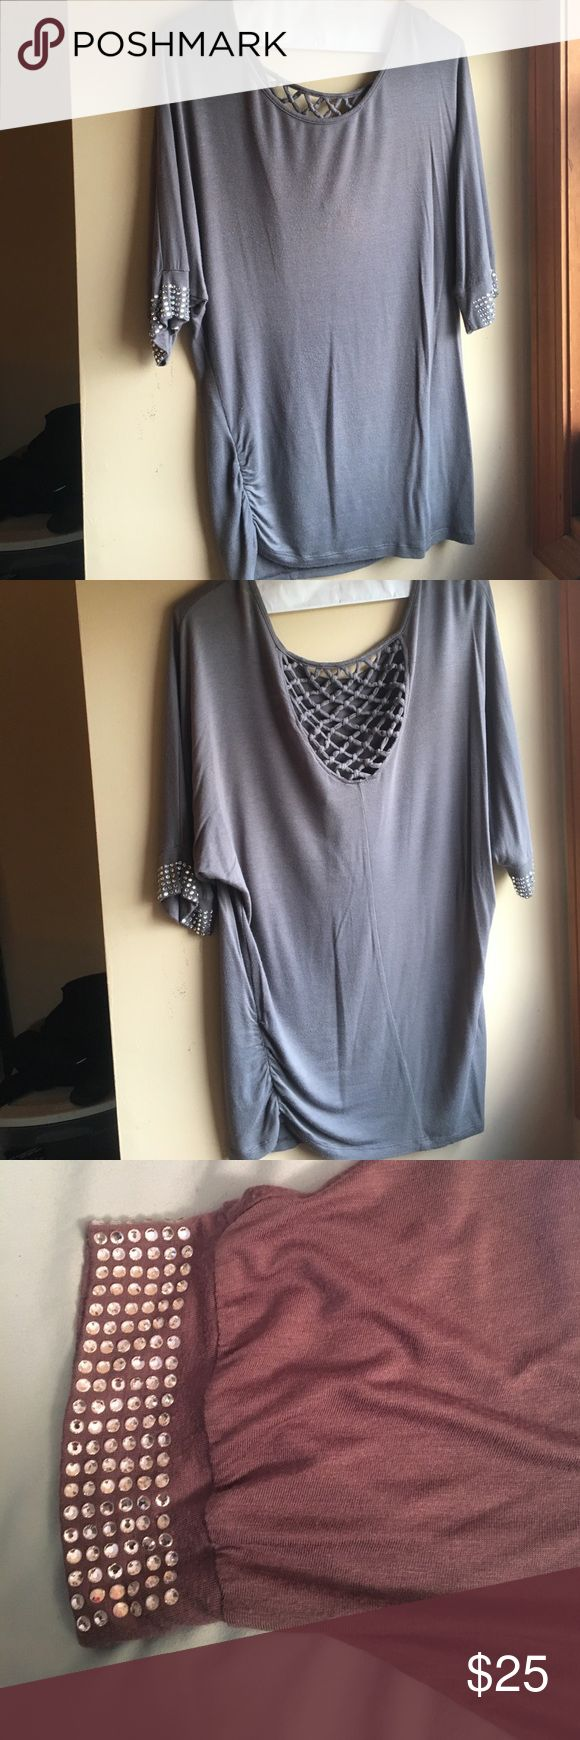 Daytrip  gray blouse with embellished sleeves Daytrip, medium, gray blouse with embellished sleeves. Worn a few times. Great condition and super comfortable! Looks great with leggings and heels! Daytrip Tops Blouses